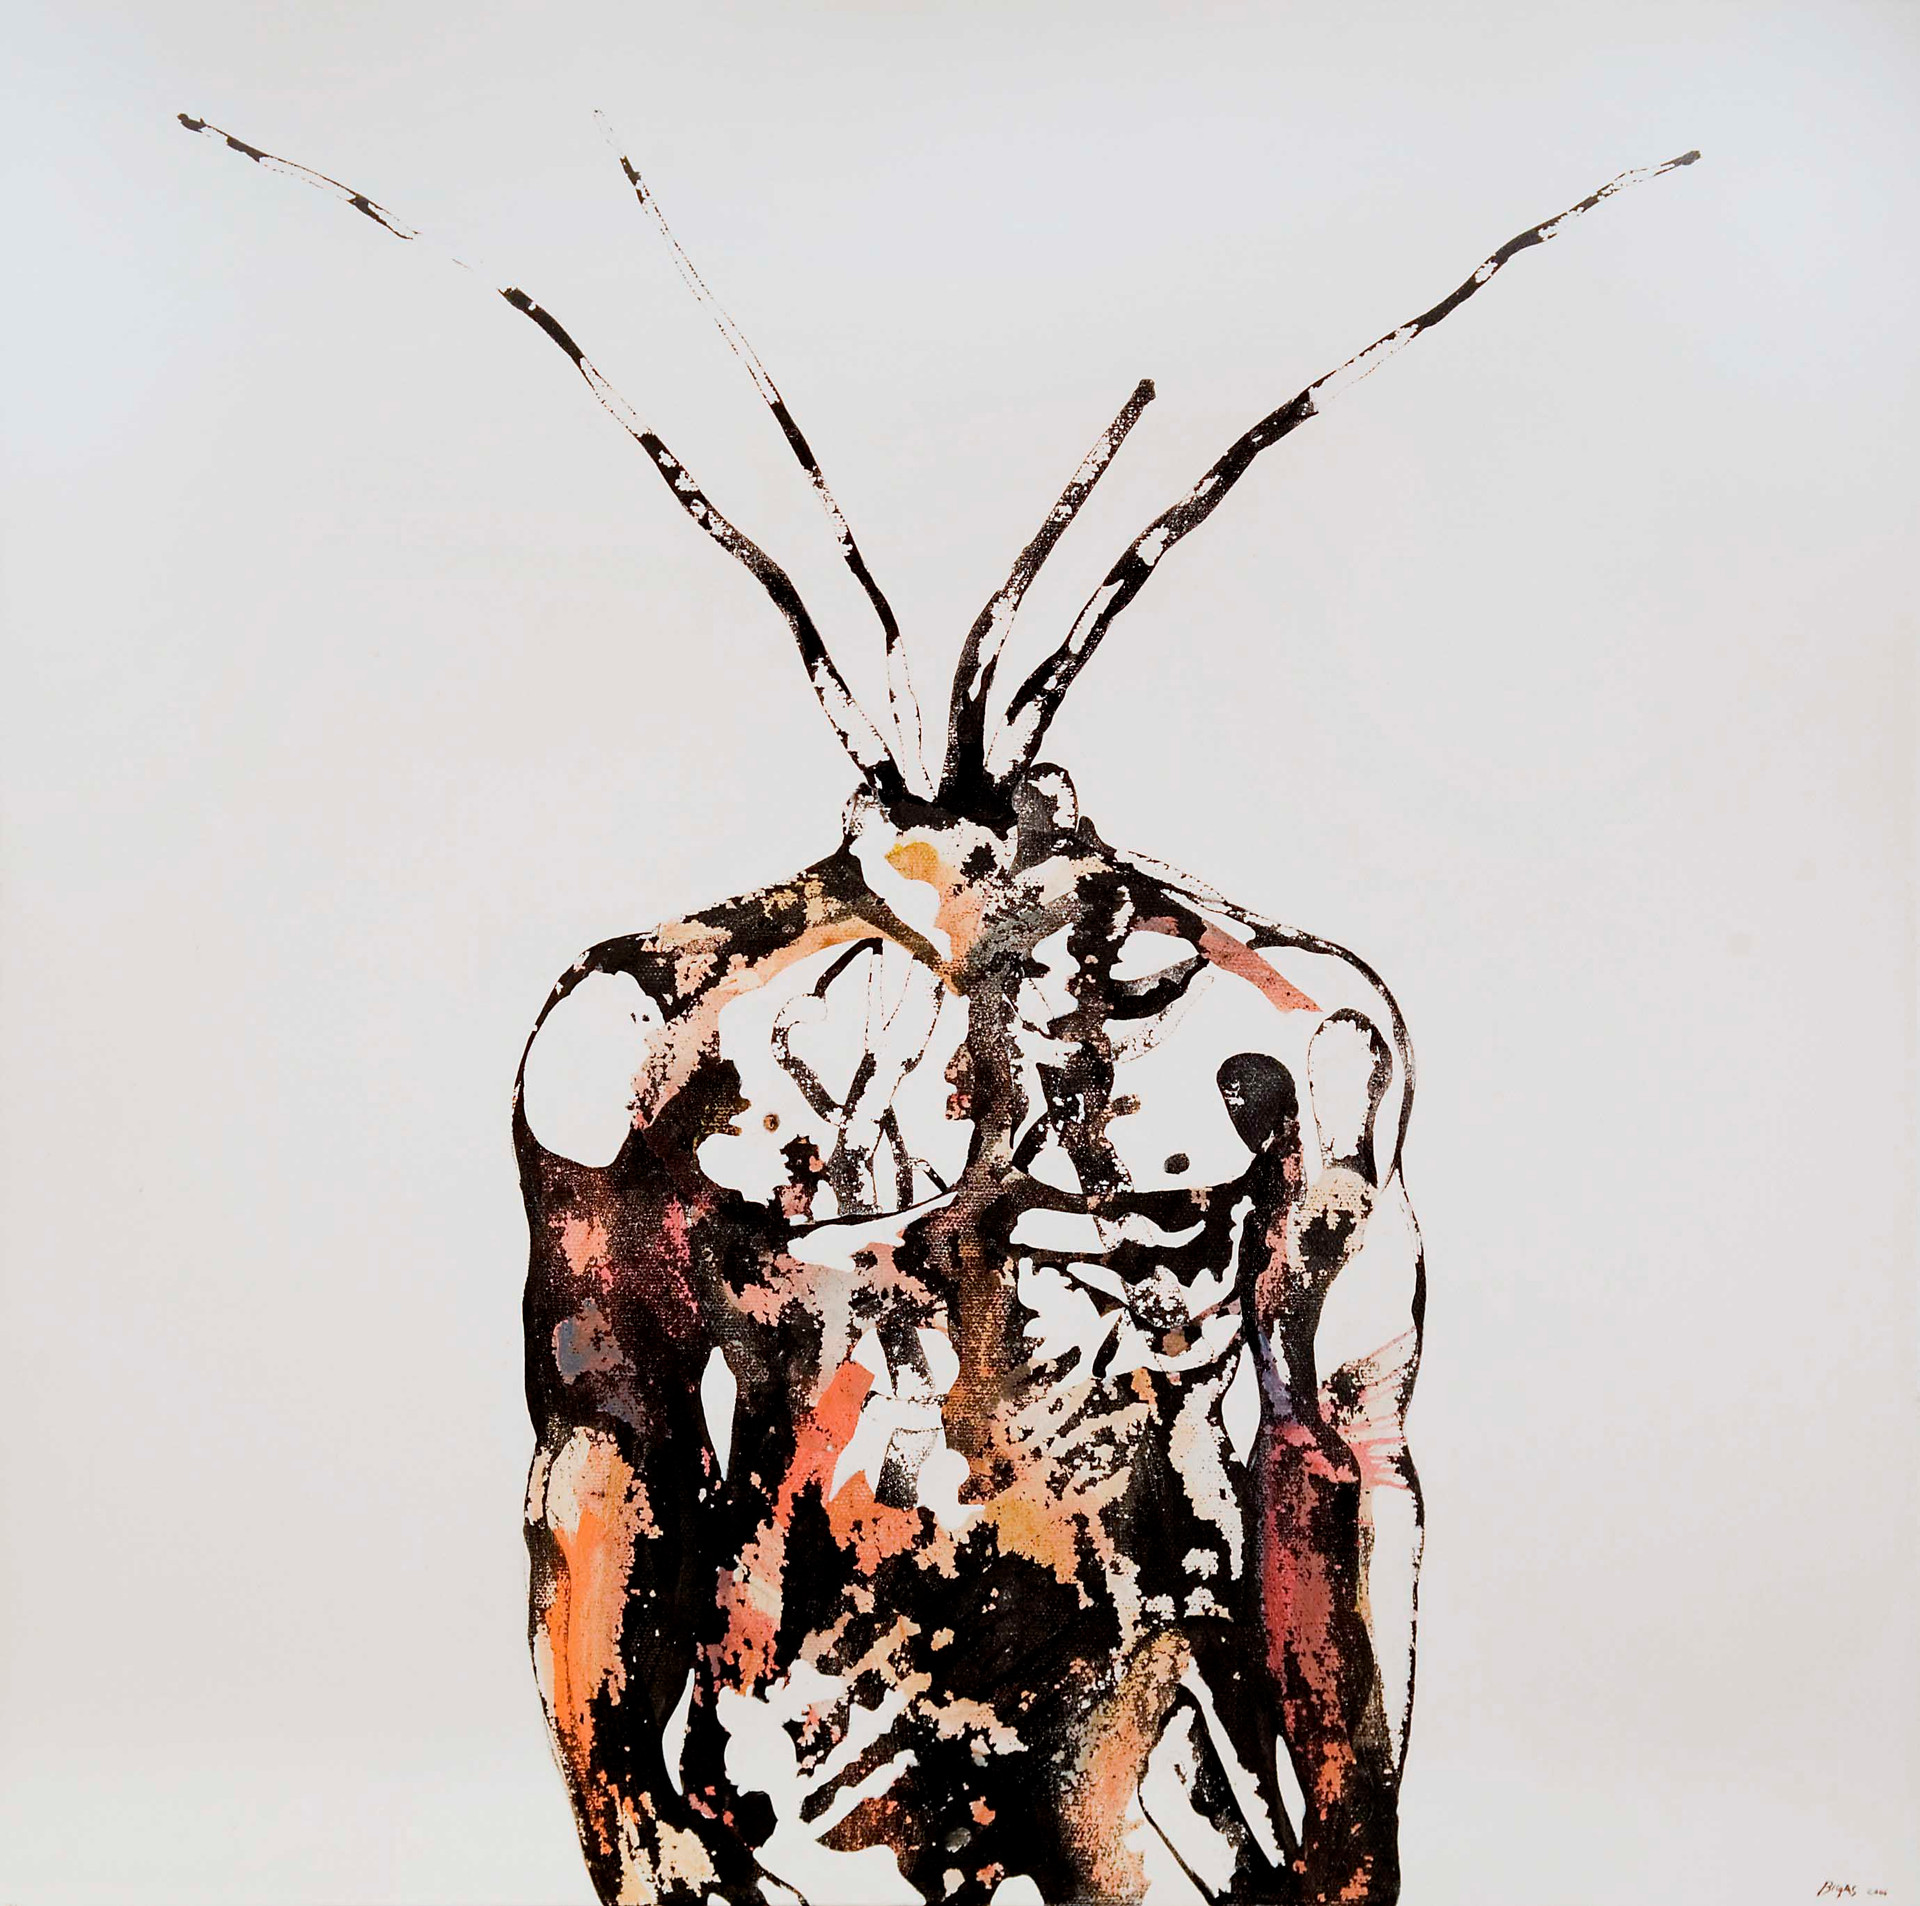 Thorax 2006 50x50cm. Acrylic and ink on canvas